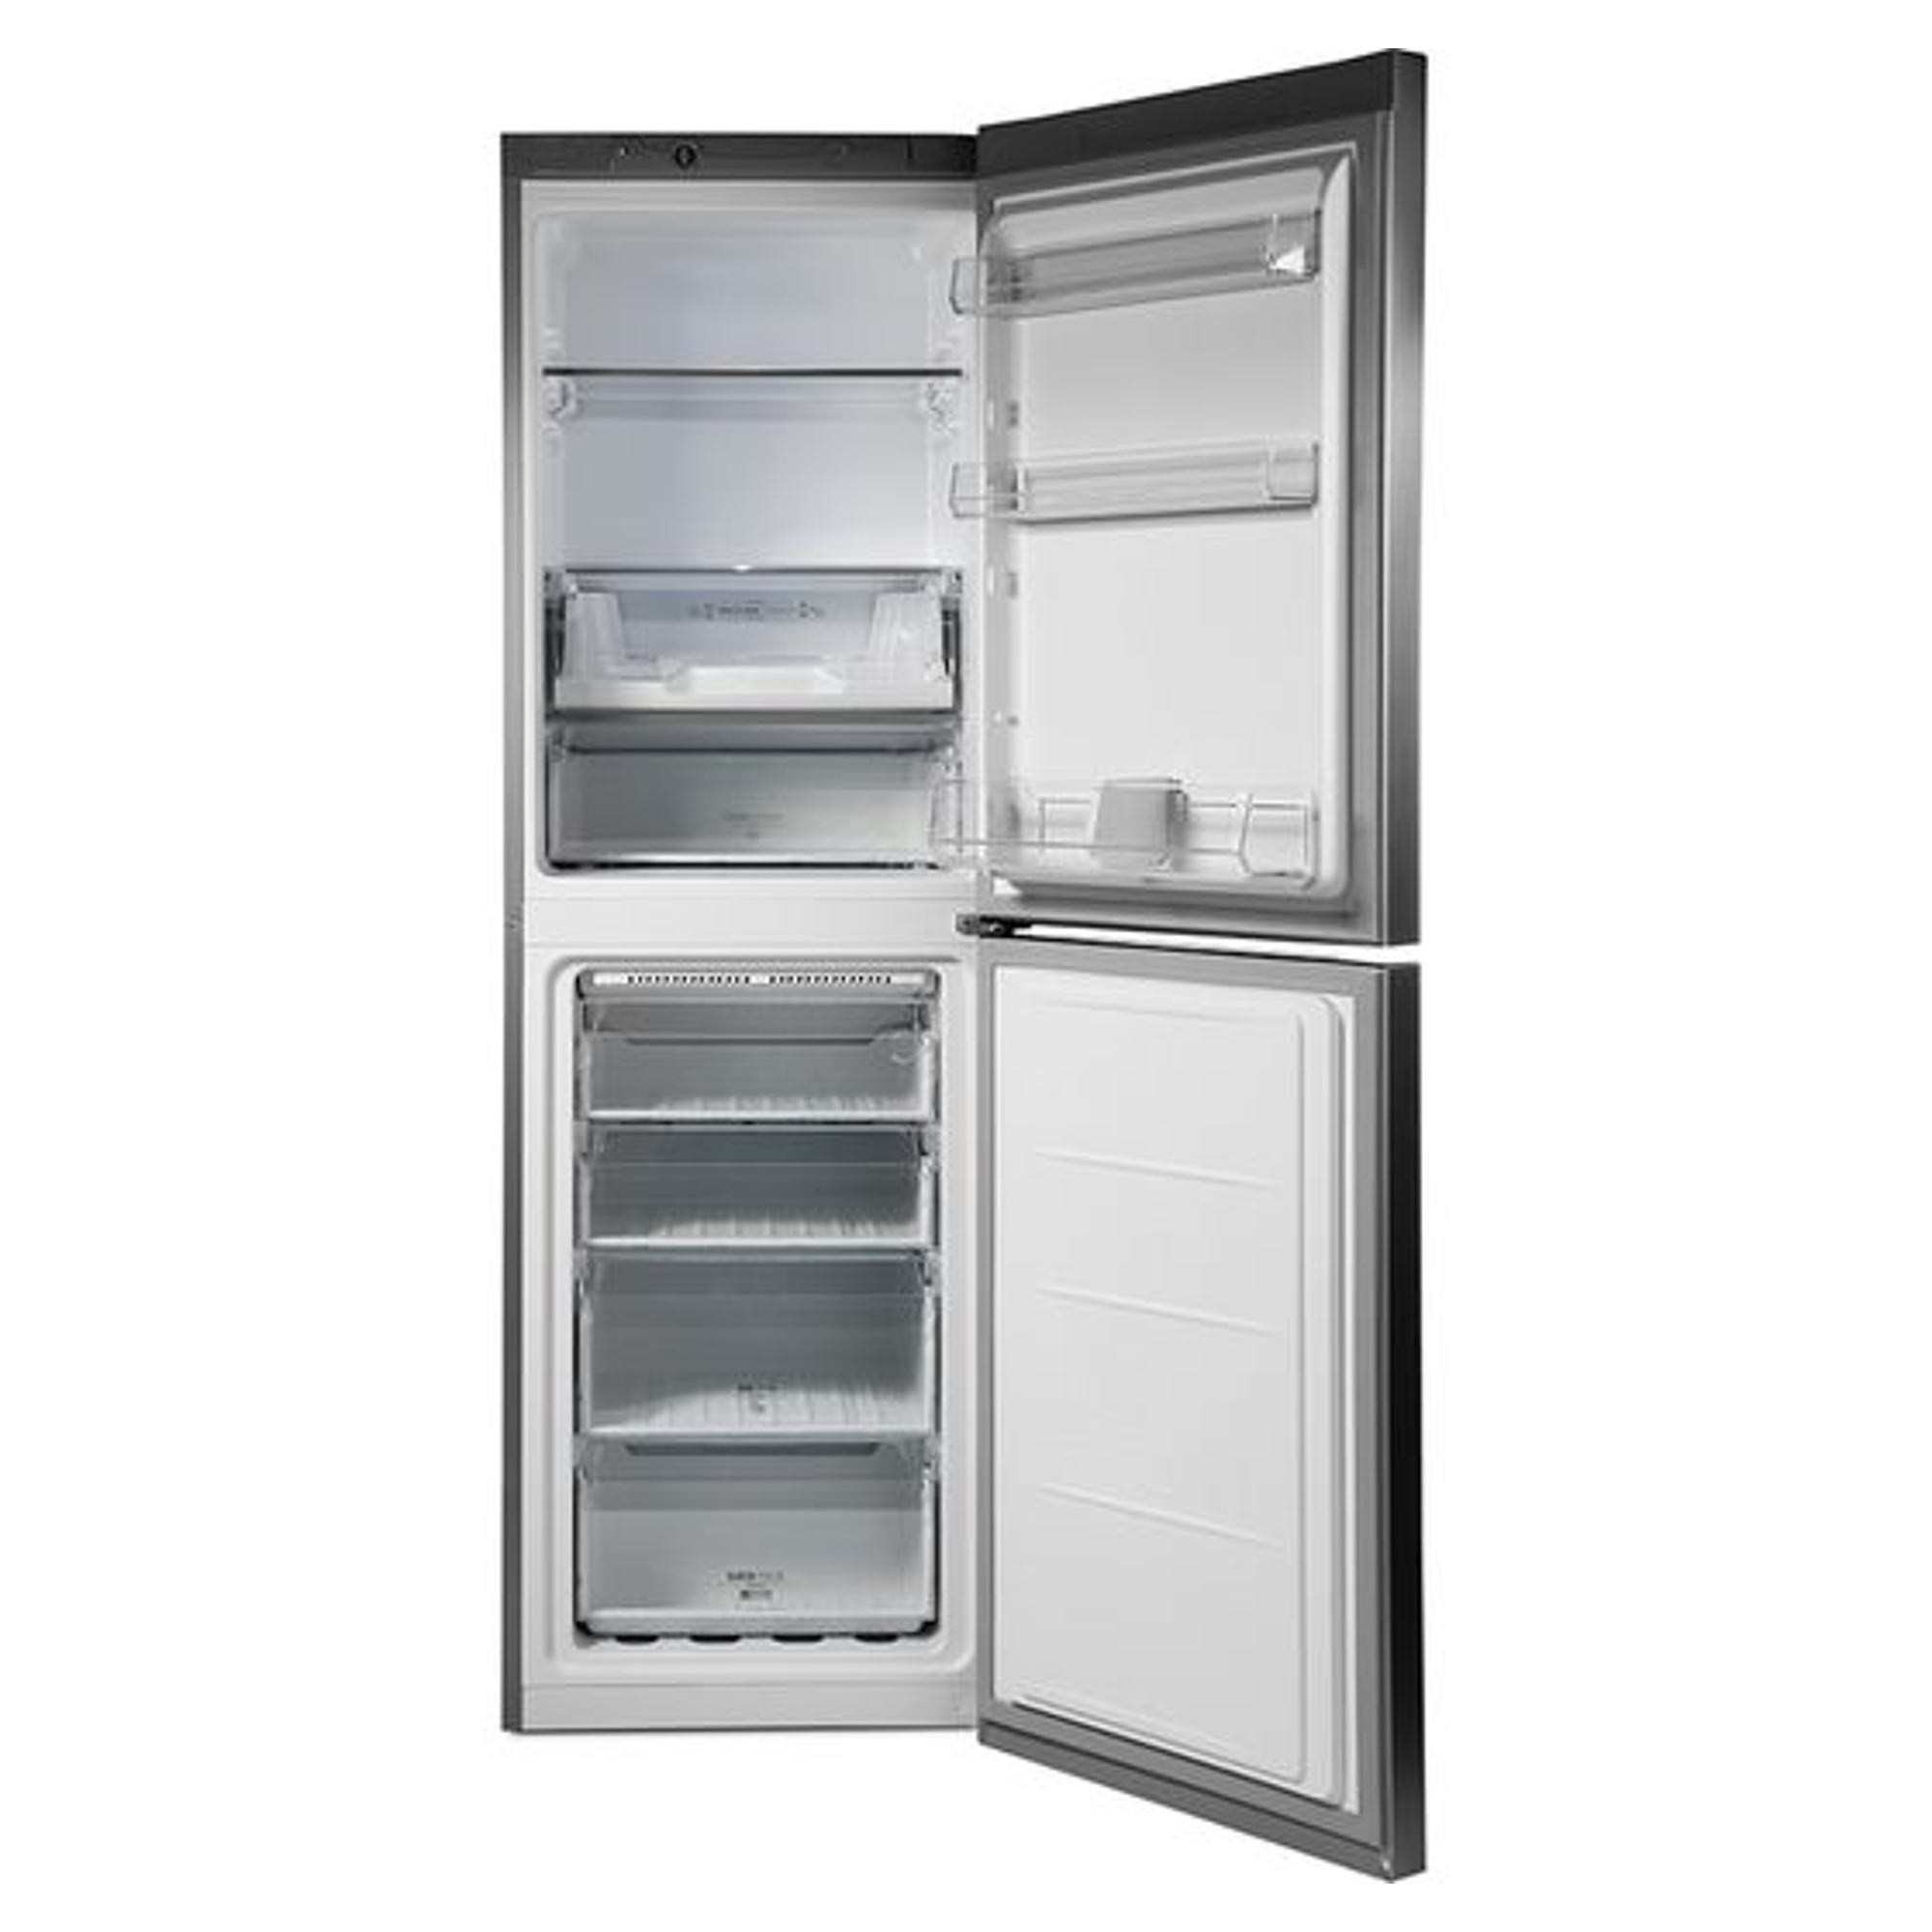 Hotpoint DC85N1G Fridge Freezer